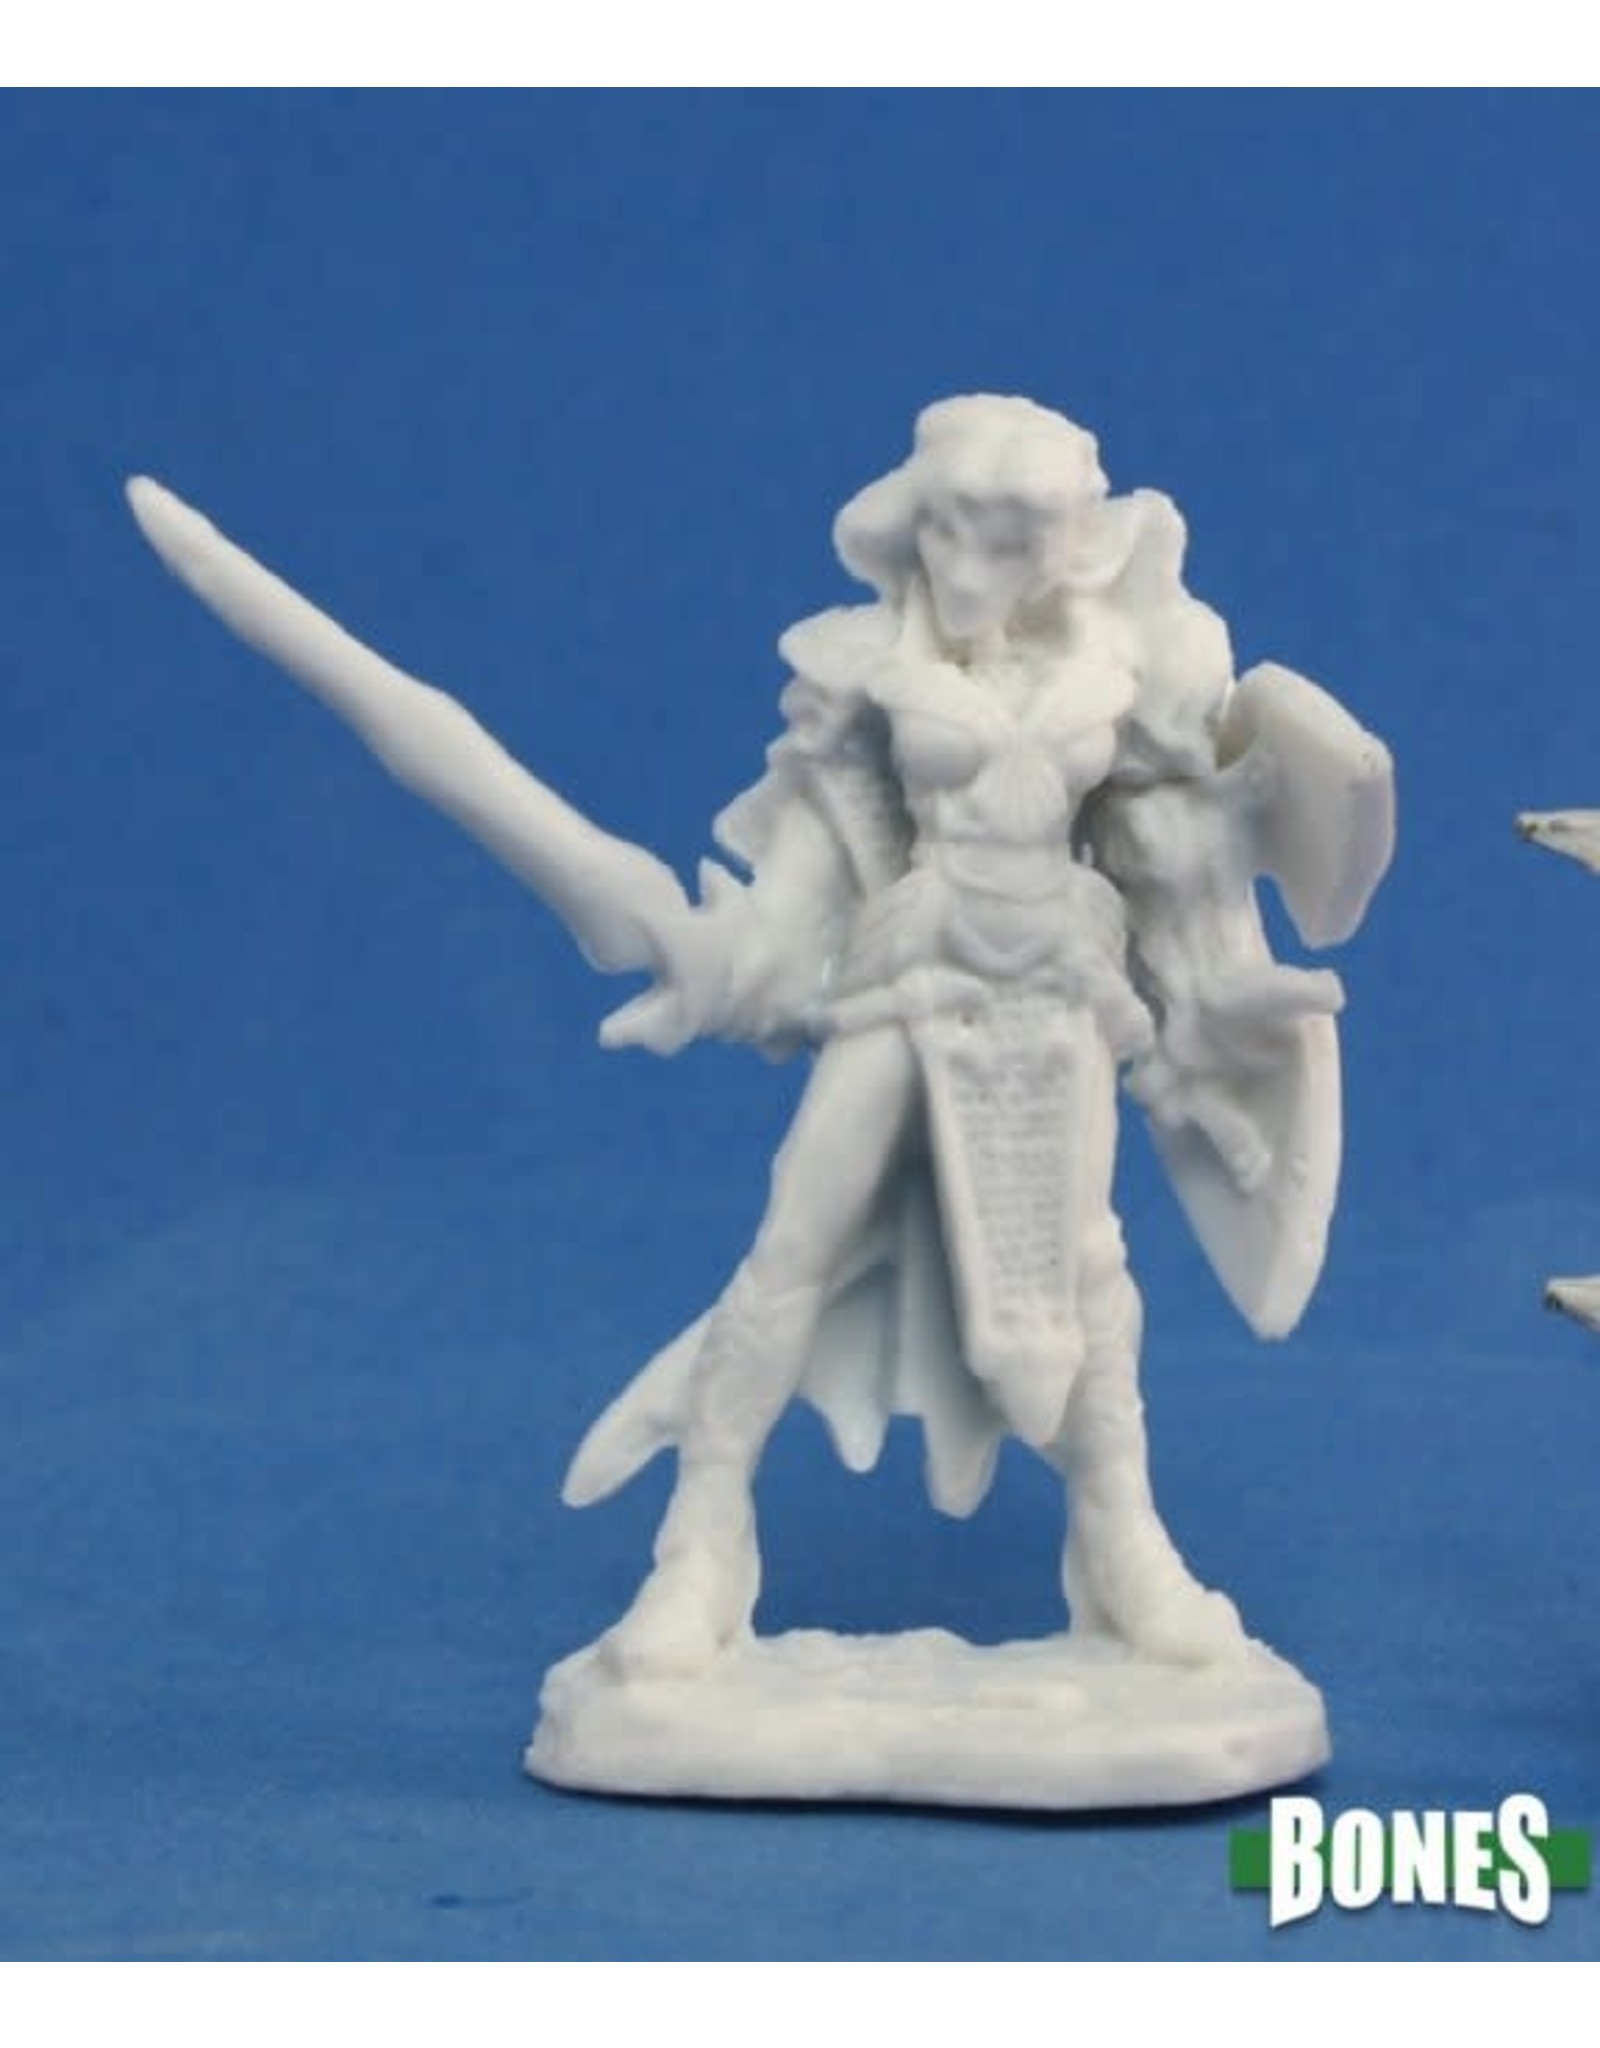 Reaper Miniatures Bones: Aviriel, Female Elf